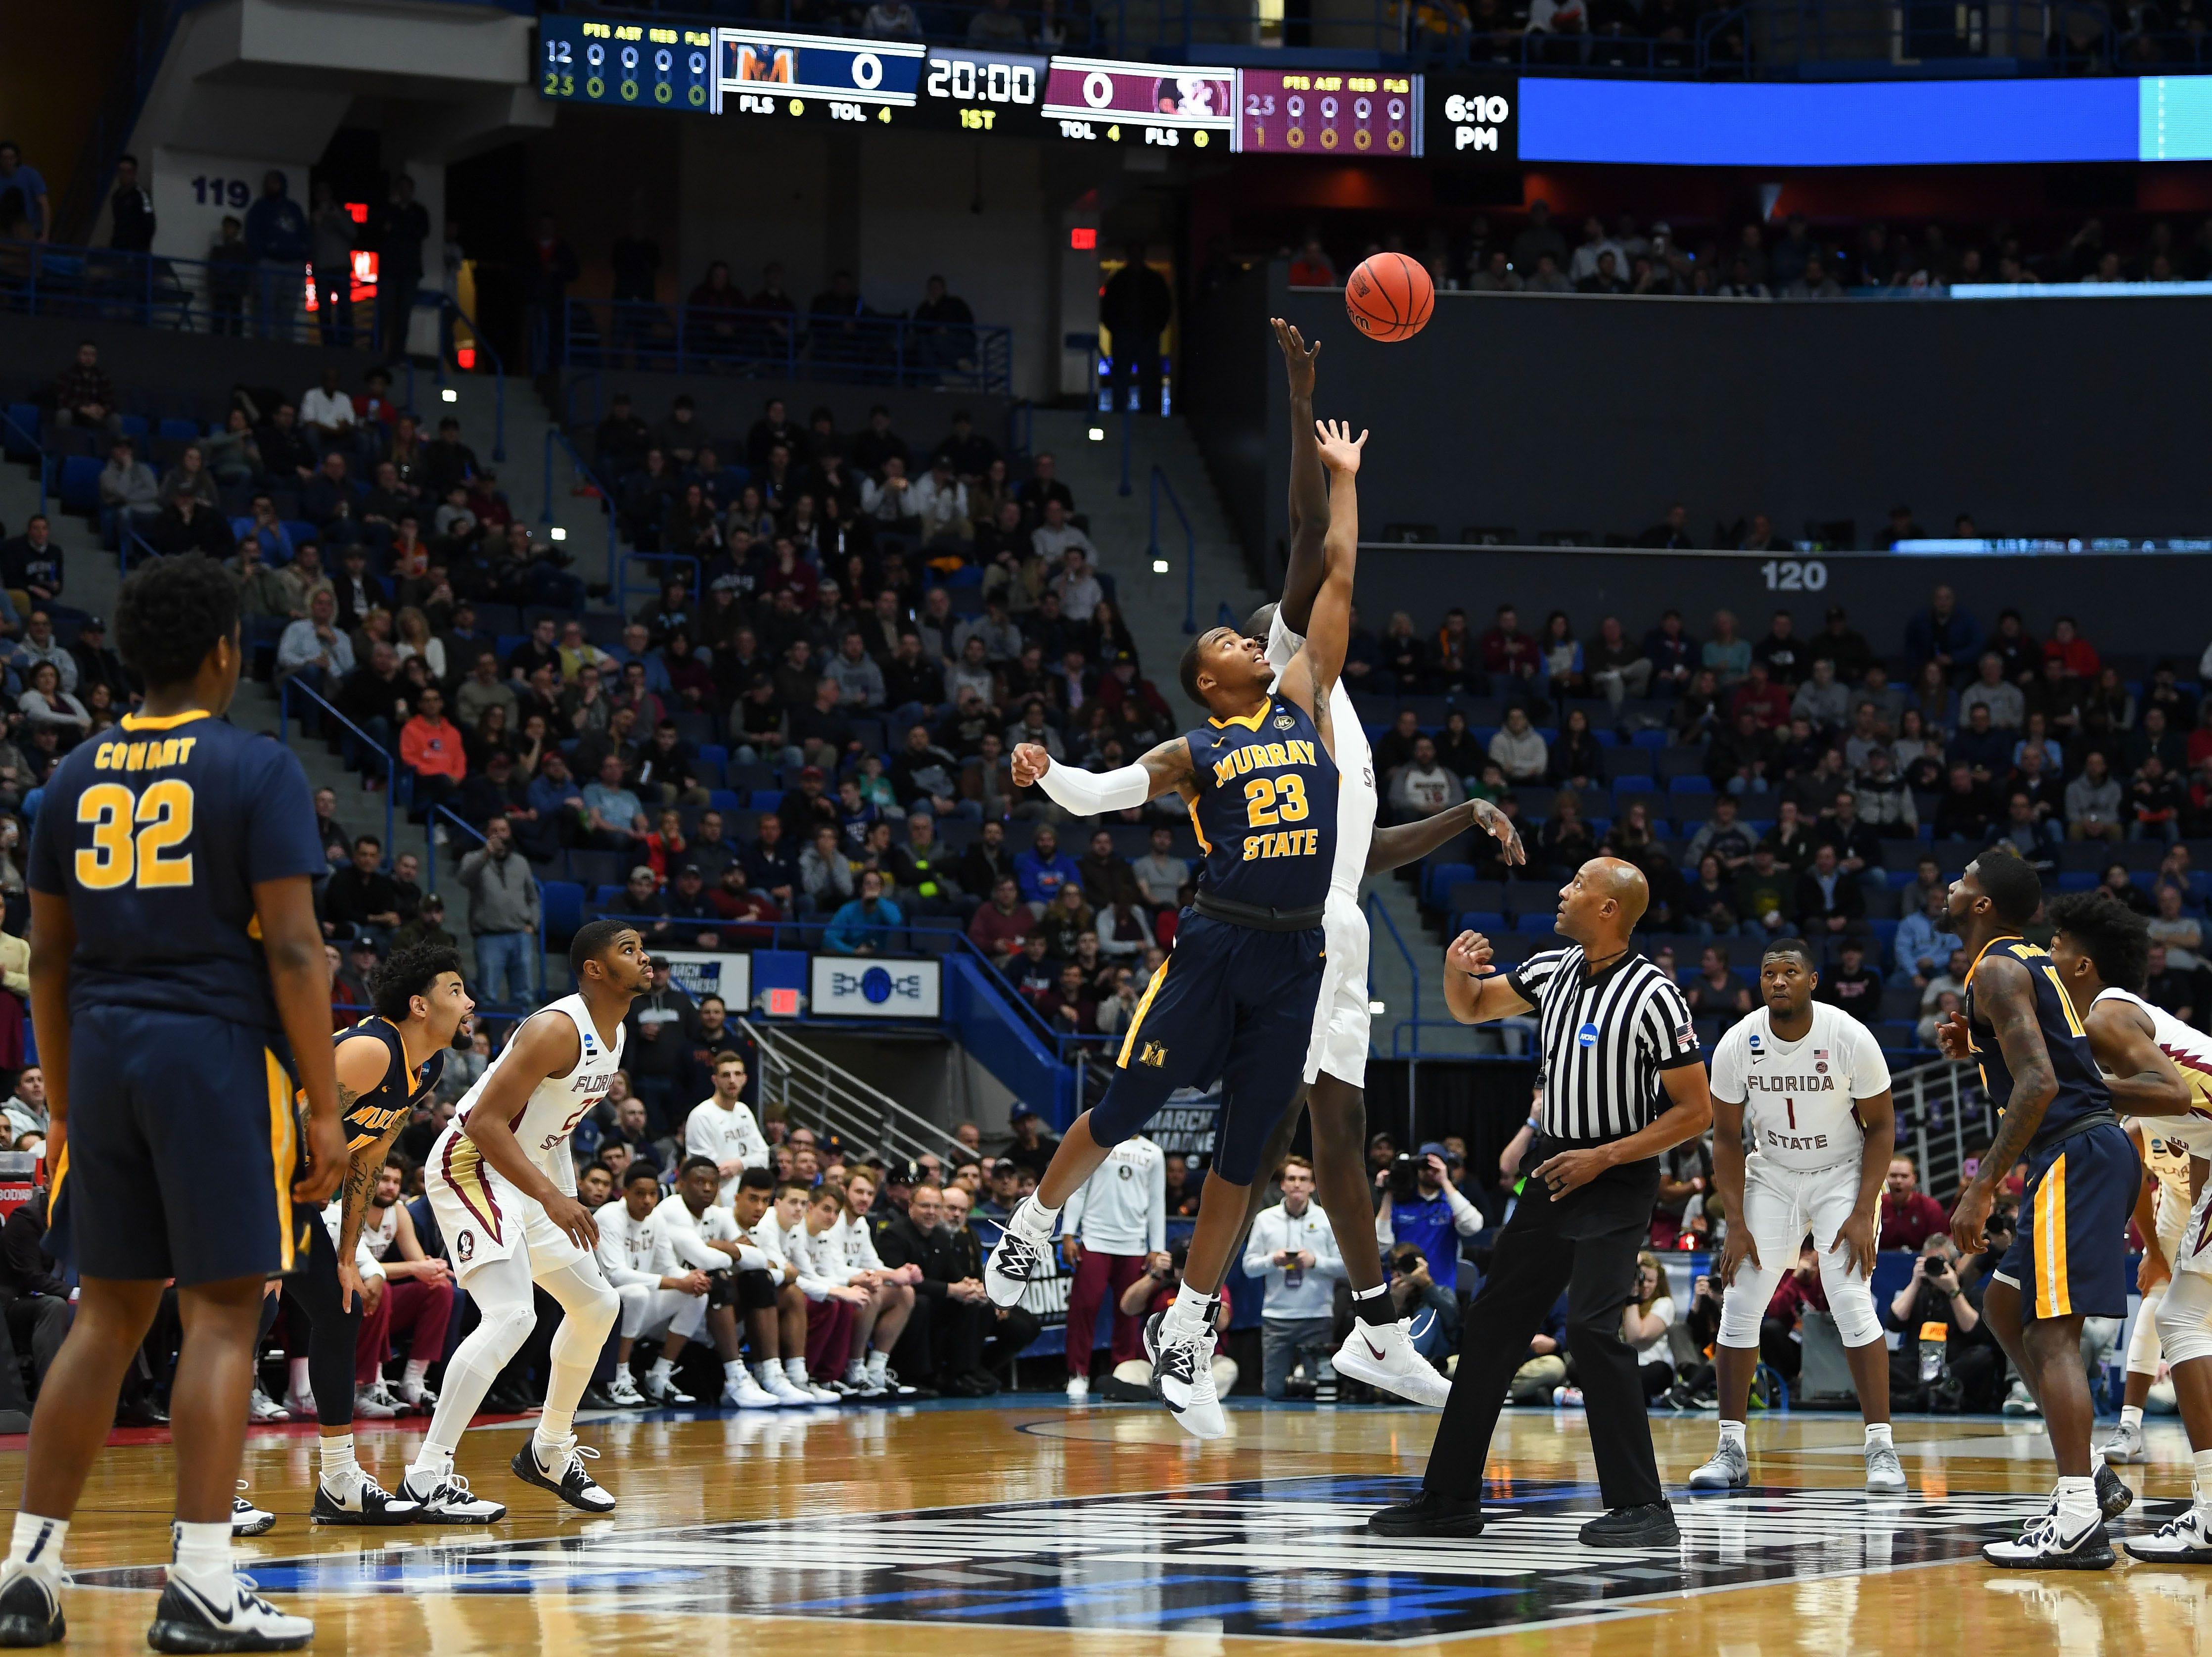 Mar 23, 2019; Hartford, CT, USA; Florida State Seminoles center Christ Koumadje (21) and Murray State Racers forward KJ Williams (23) reach for a jump ball to start a game in the second round of the 2019 NCAA Tournament at XL Center. Mandatory Credit: Robert Deutsch-USA TODAY Sports